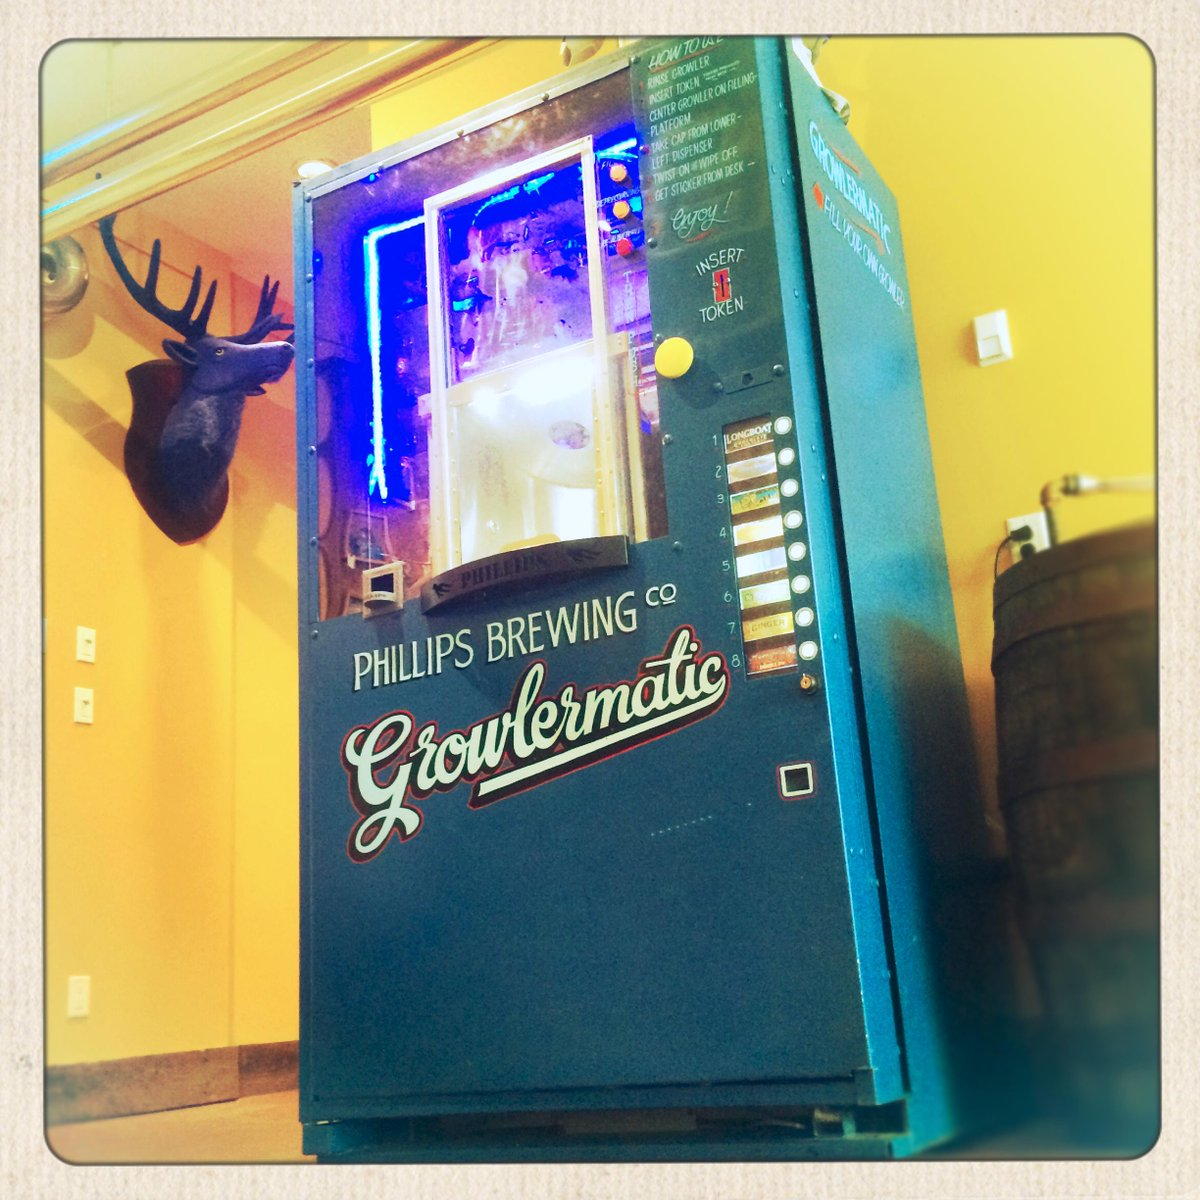 Growlermatic for the people! Our new growler filling machine depressurizes your growler too: http://t.co/teGNm3MOTo http://t.co/wLaibRa4i4